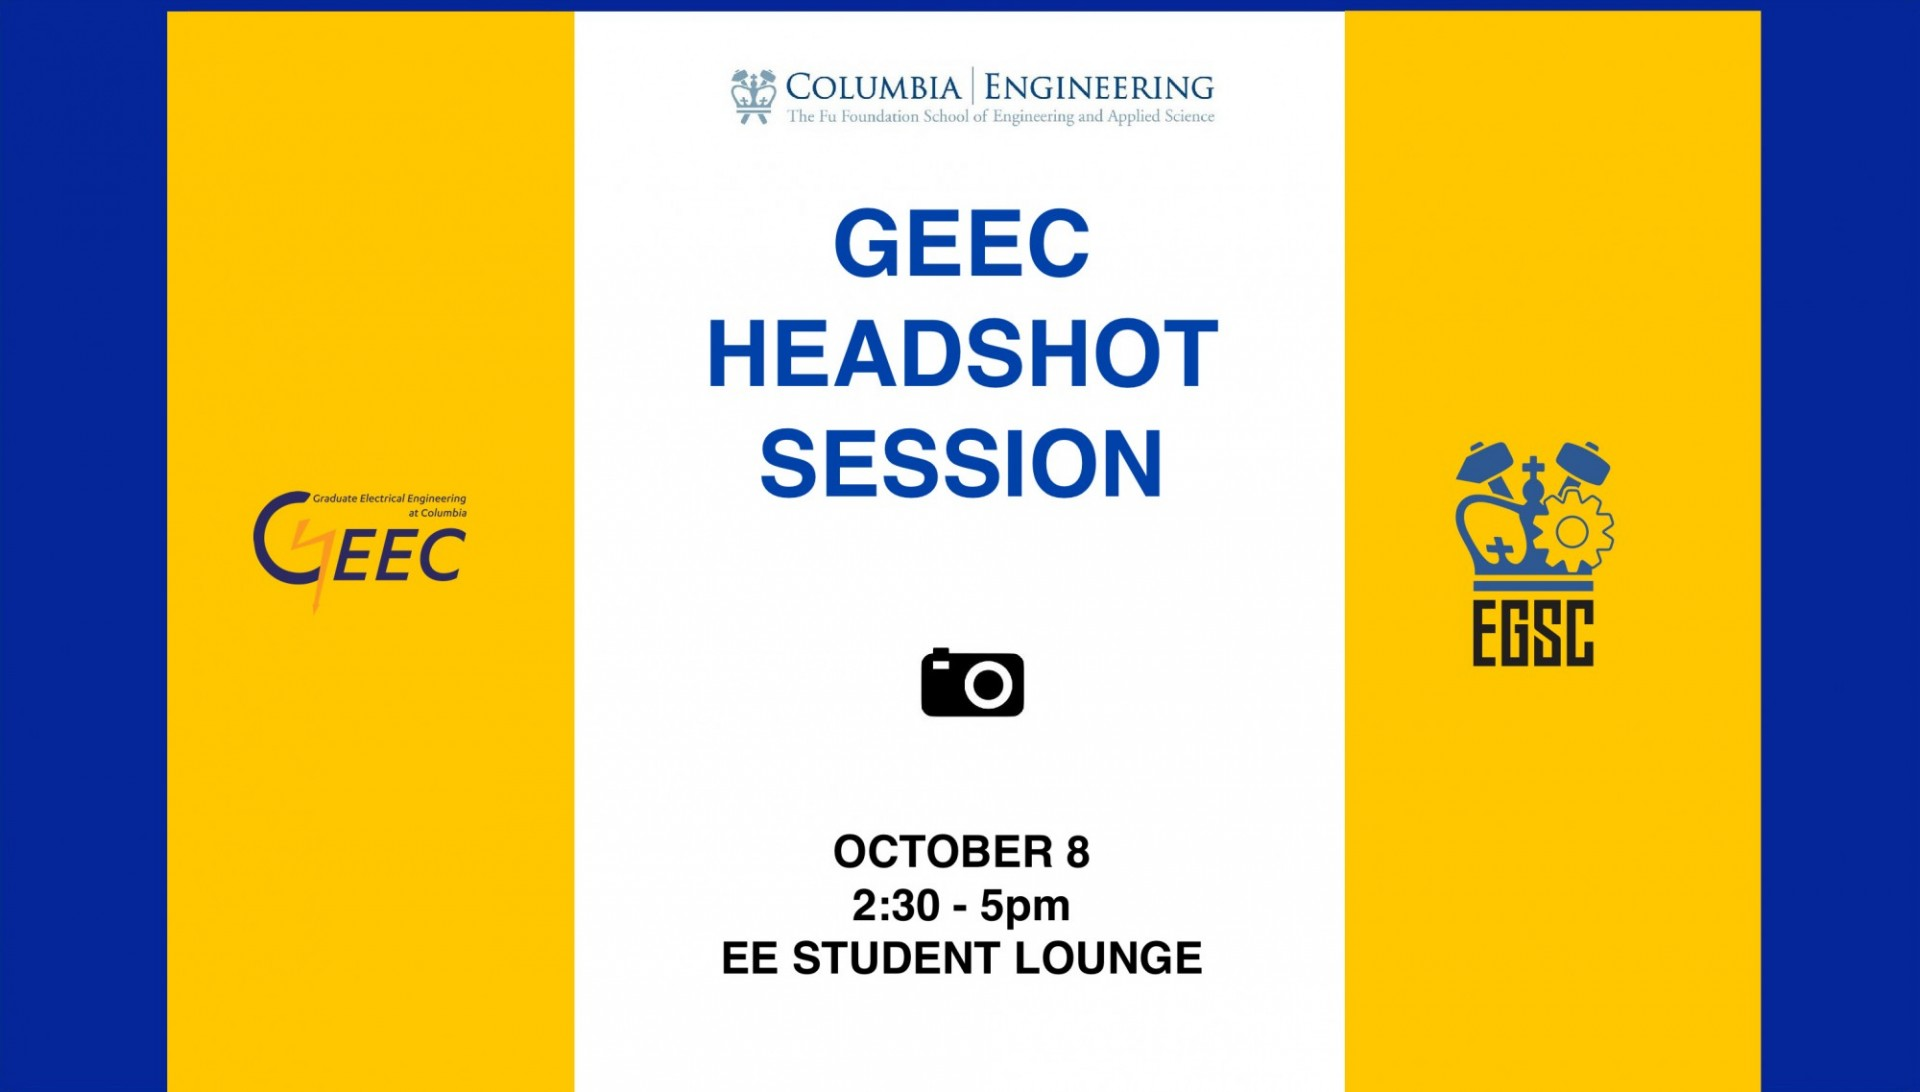 GEEC Fall 2019 Headshot session flier